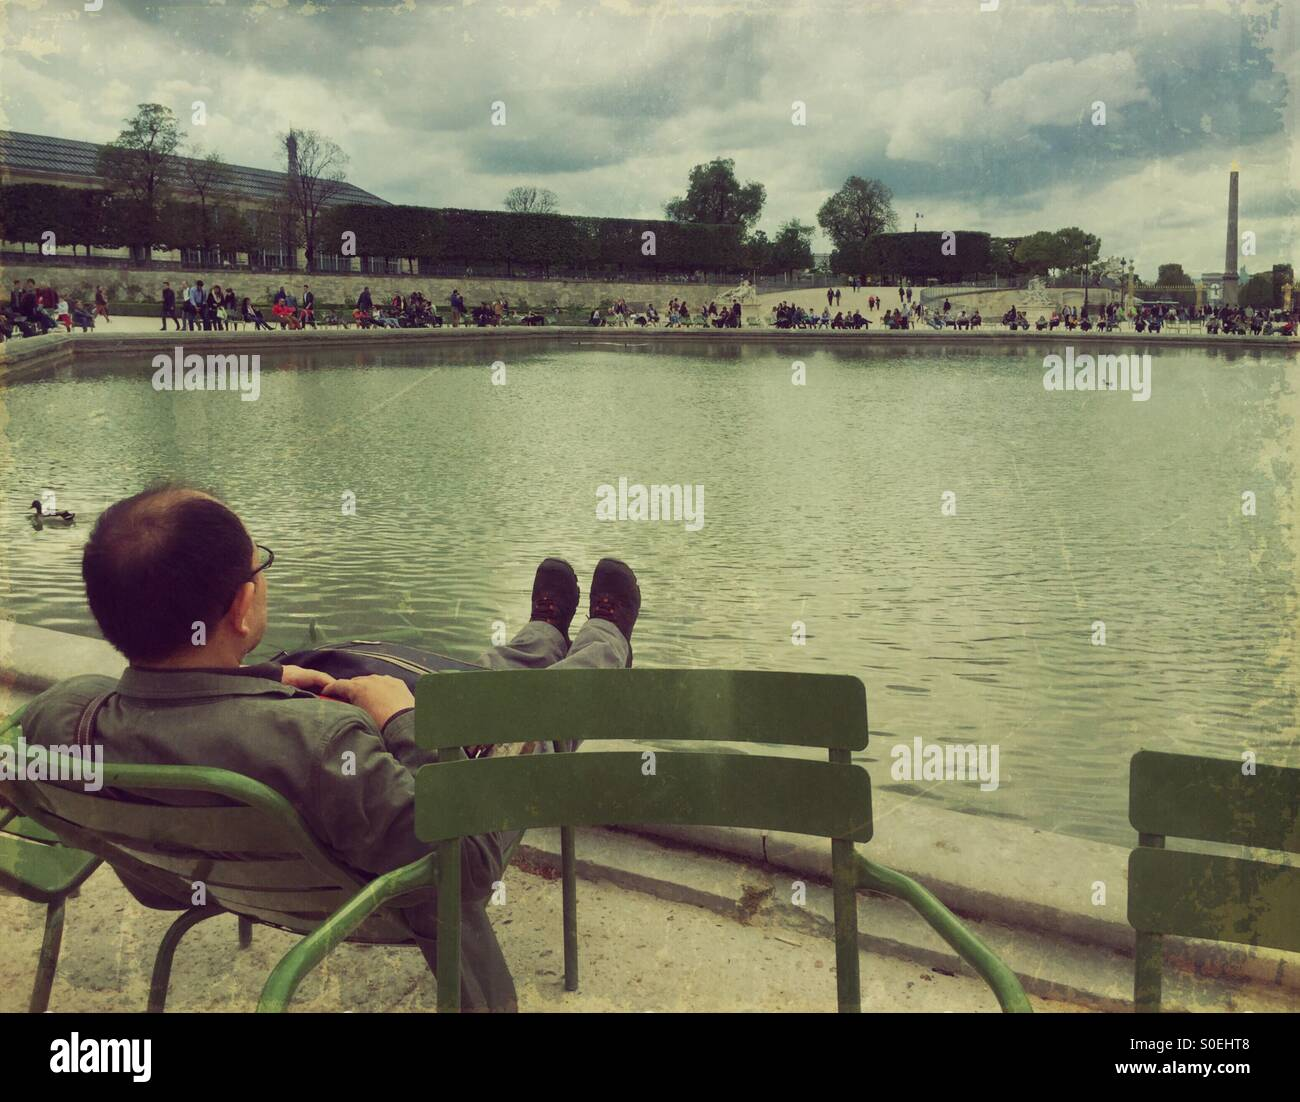 Man relaxing on a lawn chair by the Bassin Octagonal pond at Jardin des Tuileries garden in Paris, France. Vintage Stock Photo